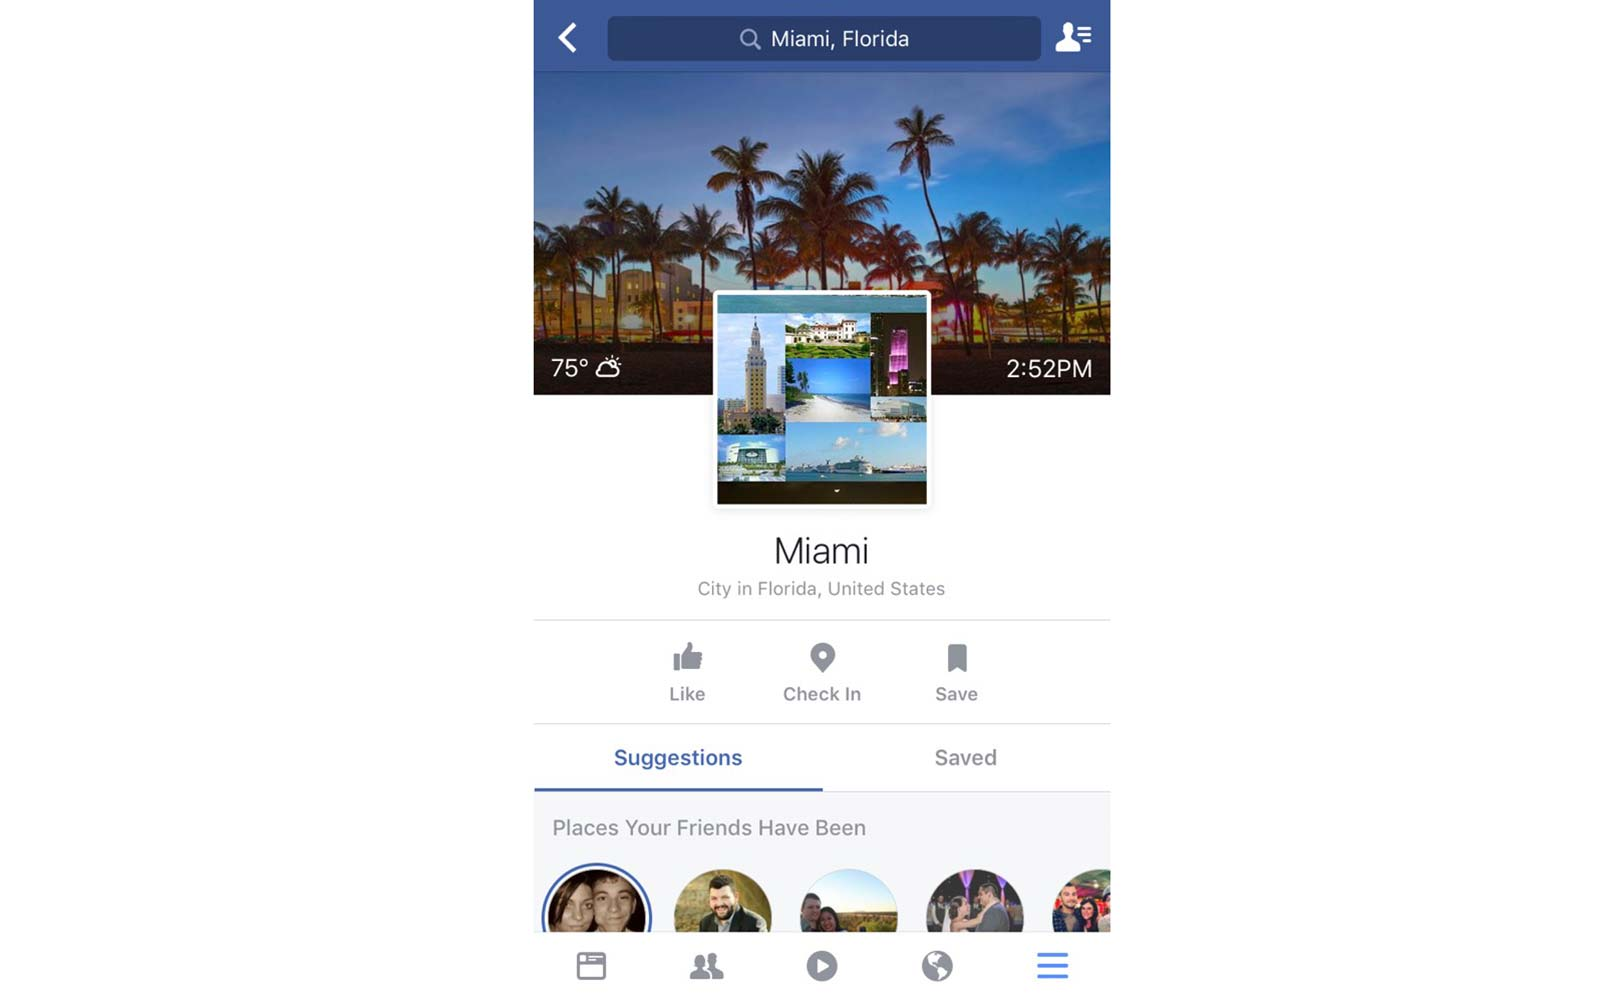 How to use Facebook City Guides